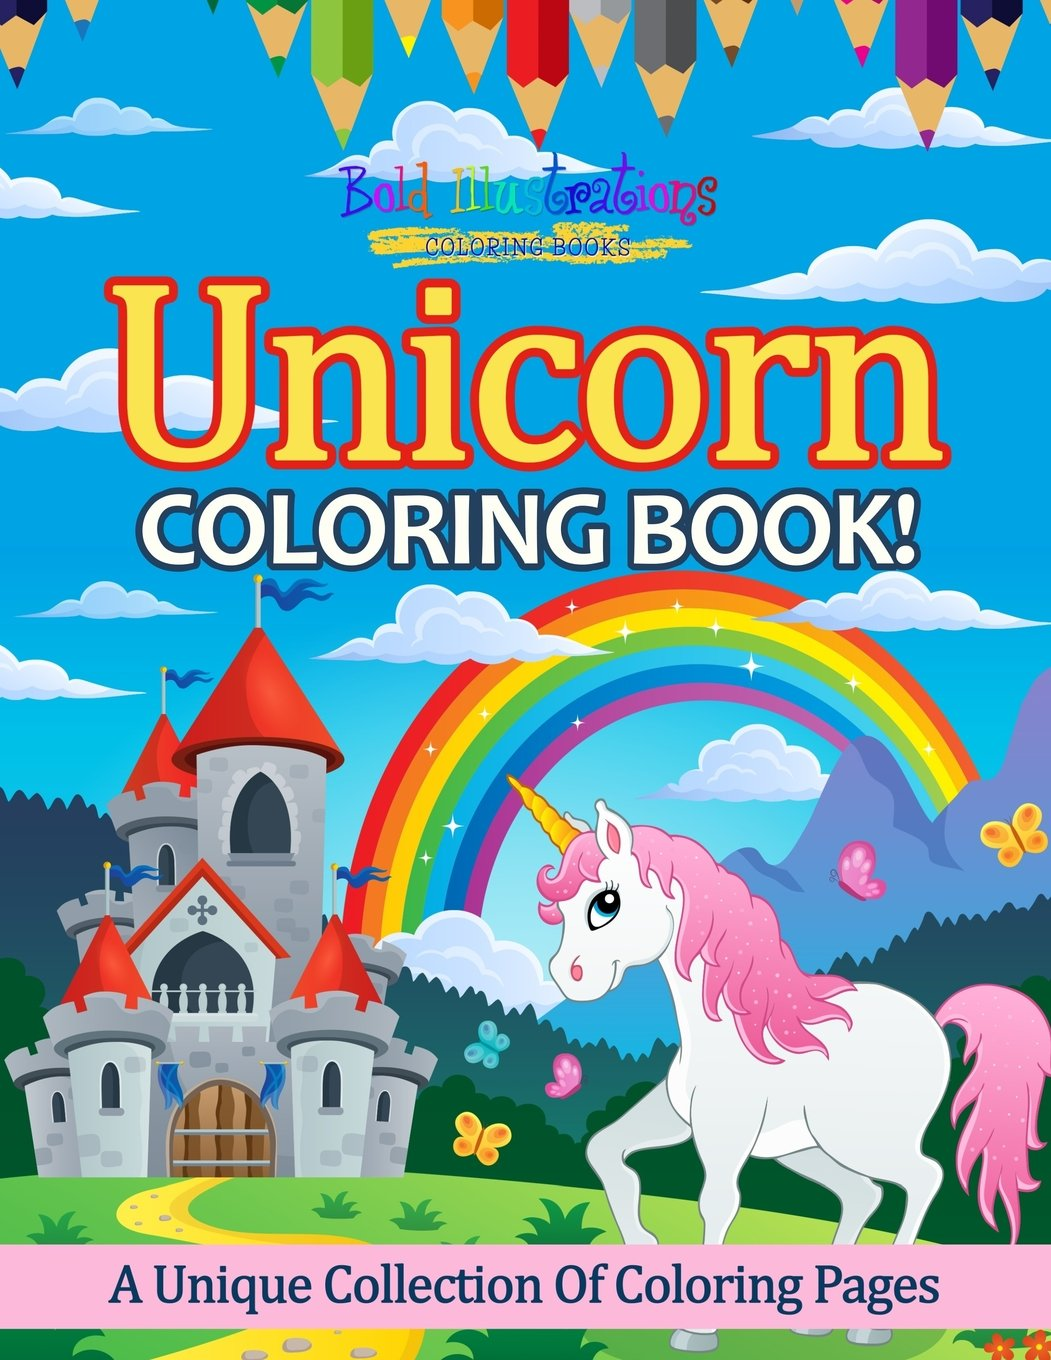 Unicorn Coloring Book! A Unique Collection Of Coloring Pages: Bold ...